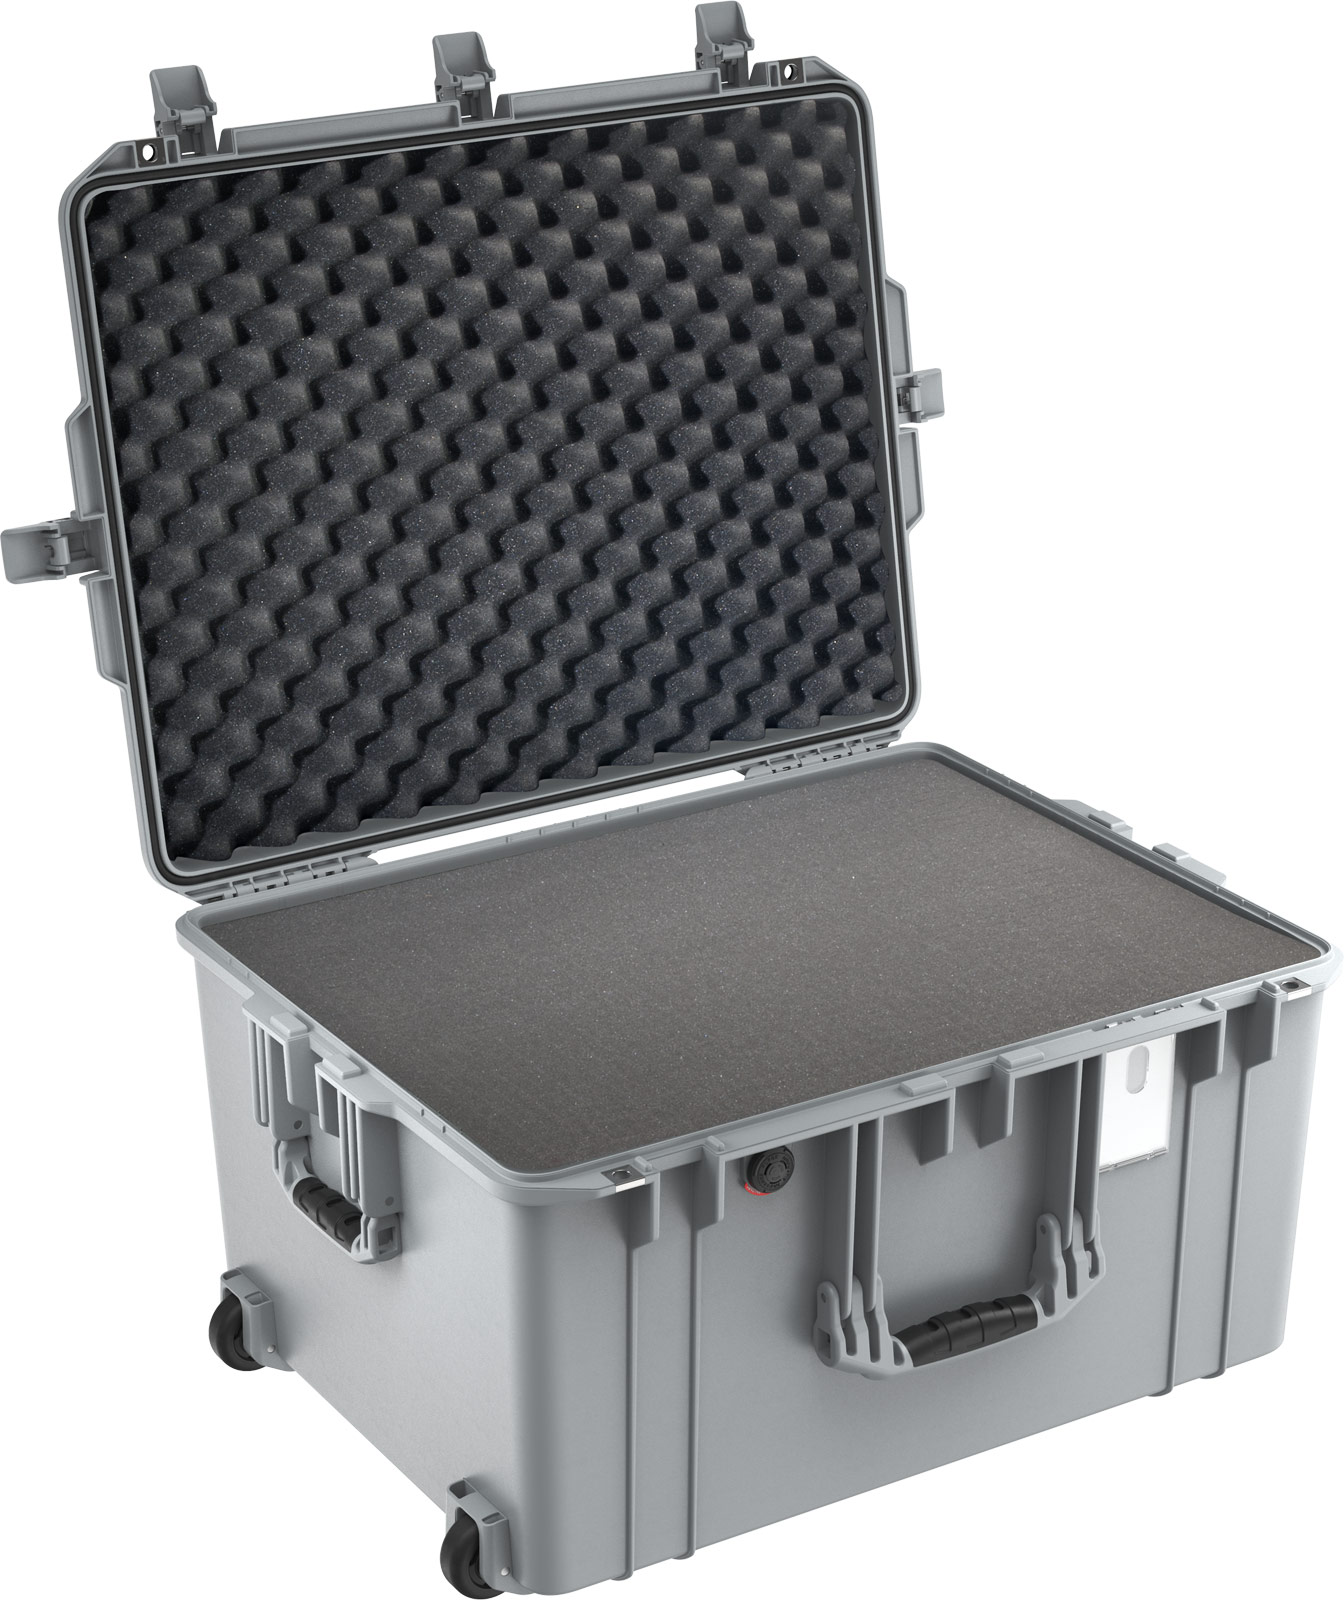 pelican 1637 air silver roller travel case